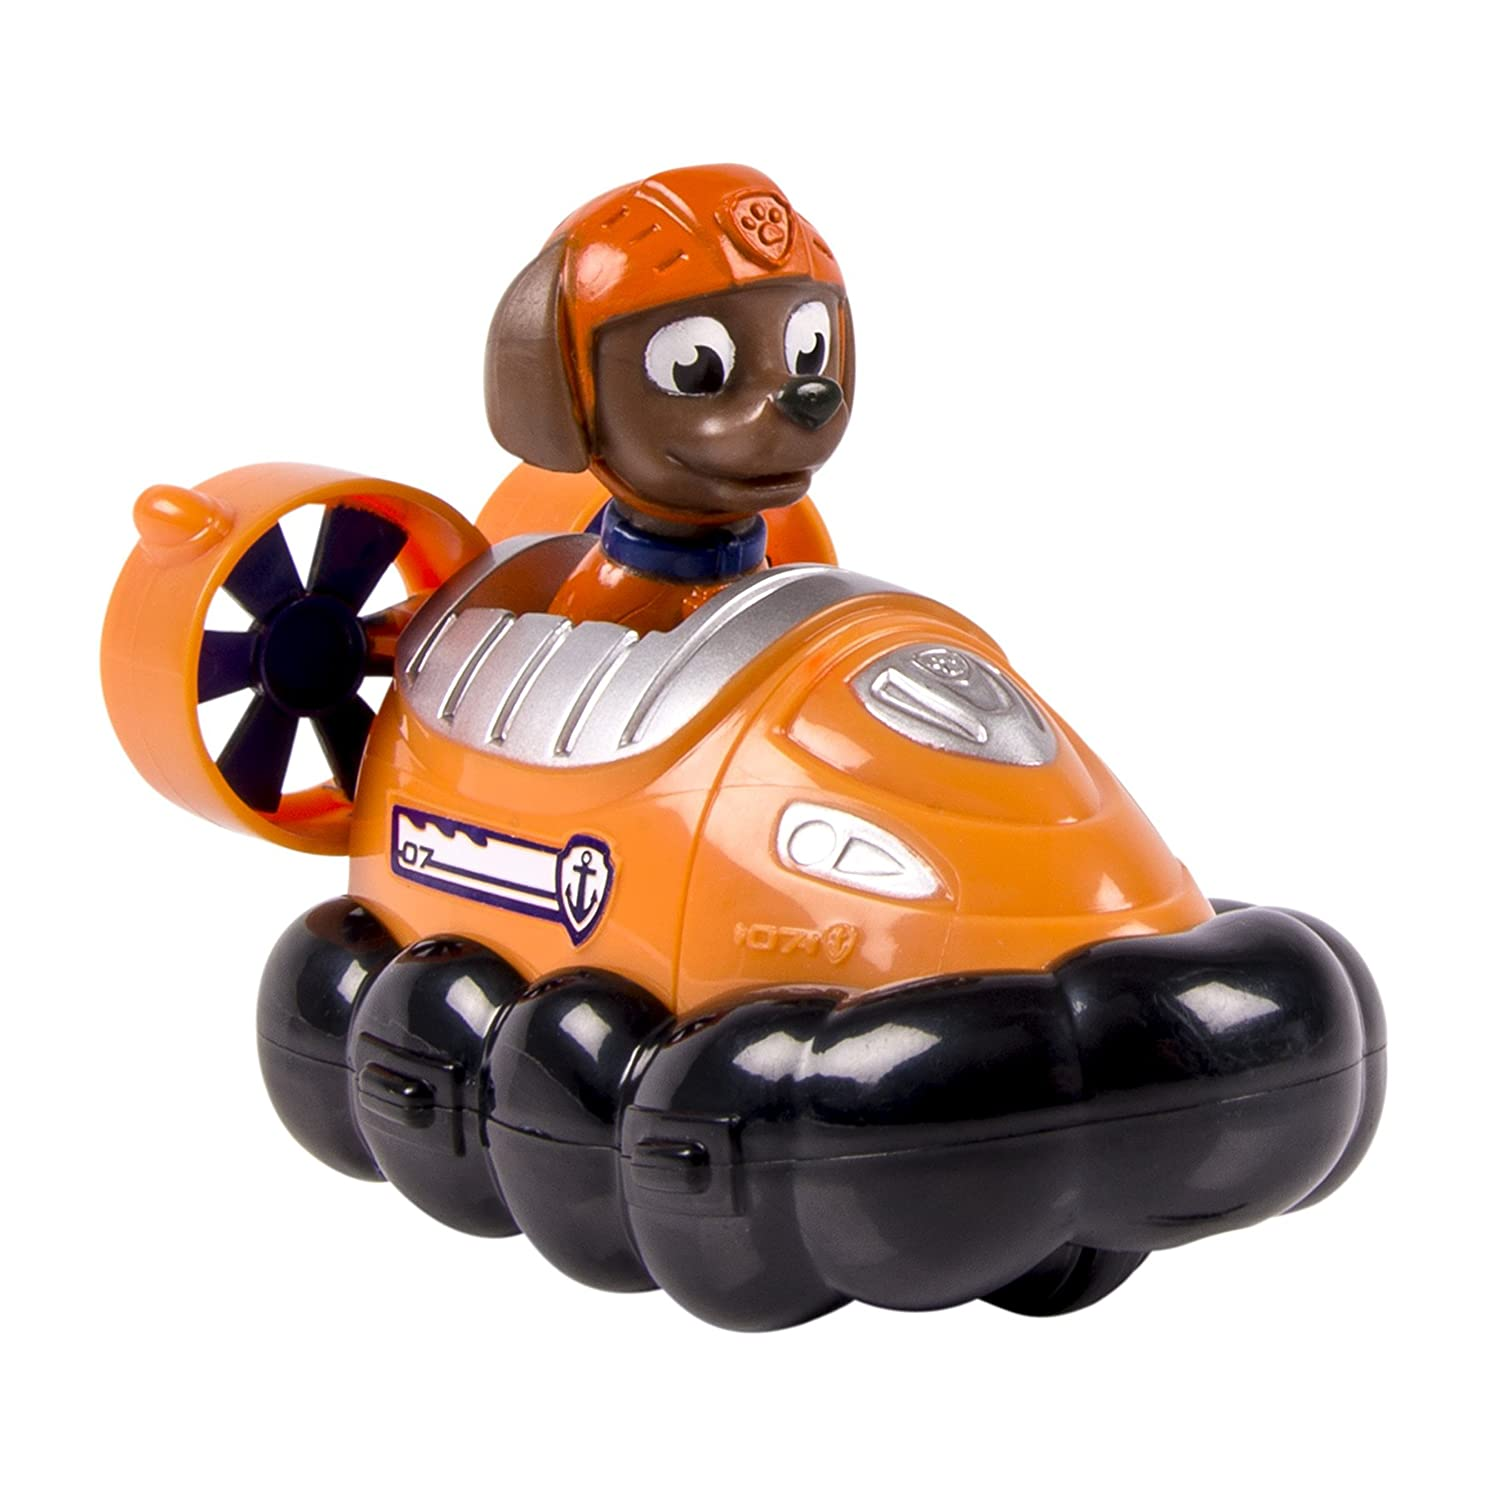 PAW PATROL Rescue Racer - Zuma Spin Master 20065120